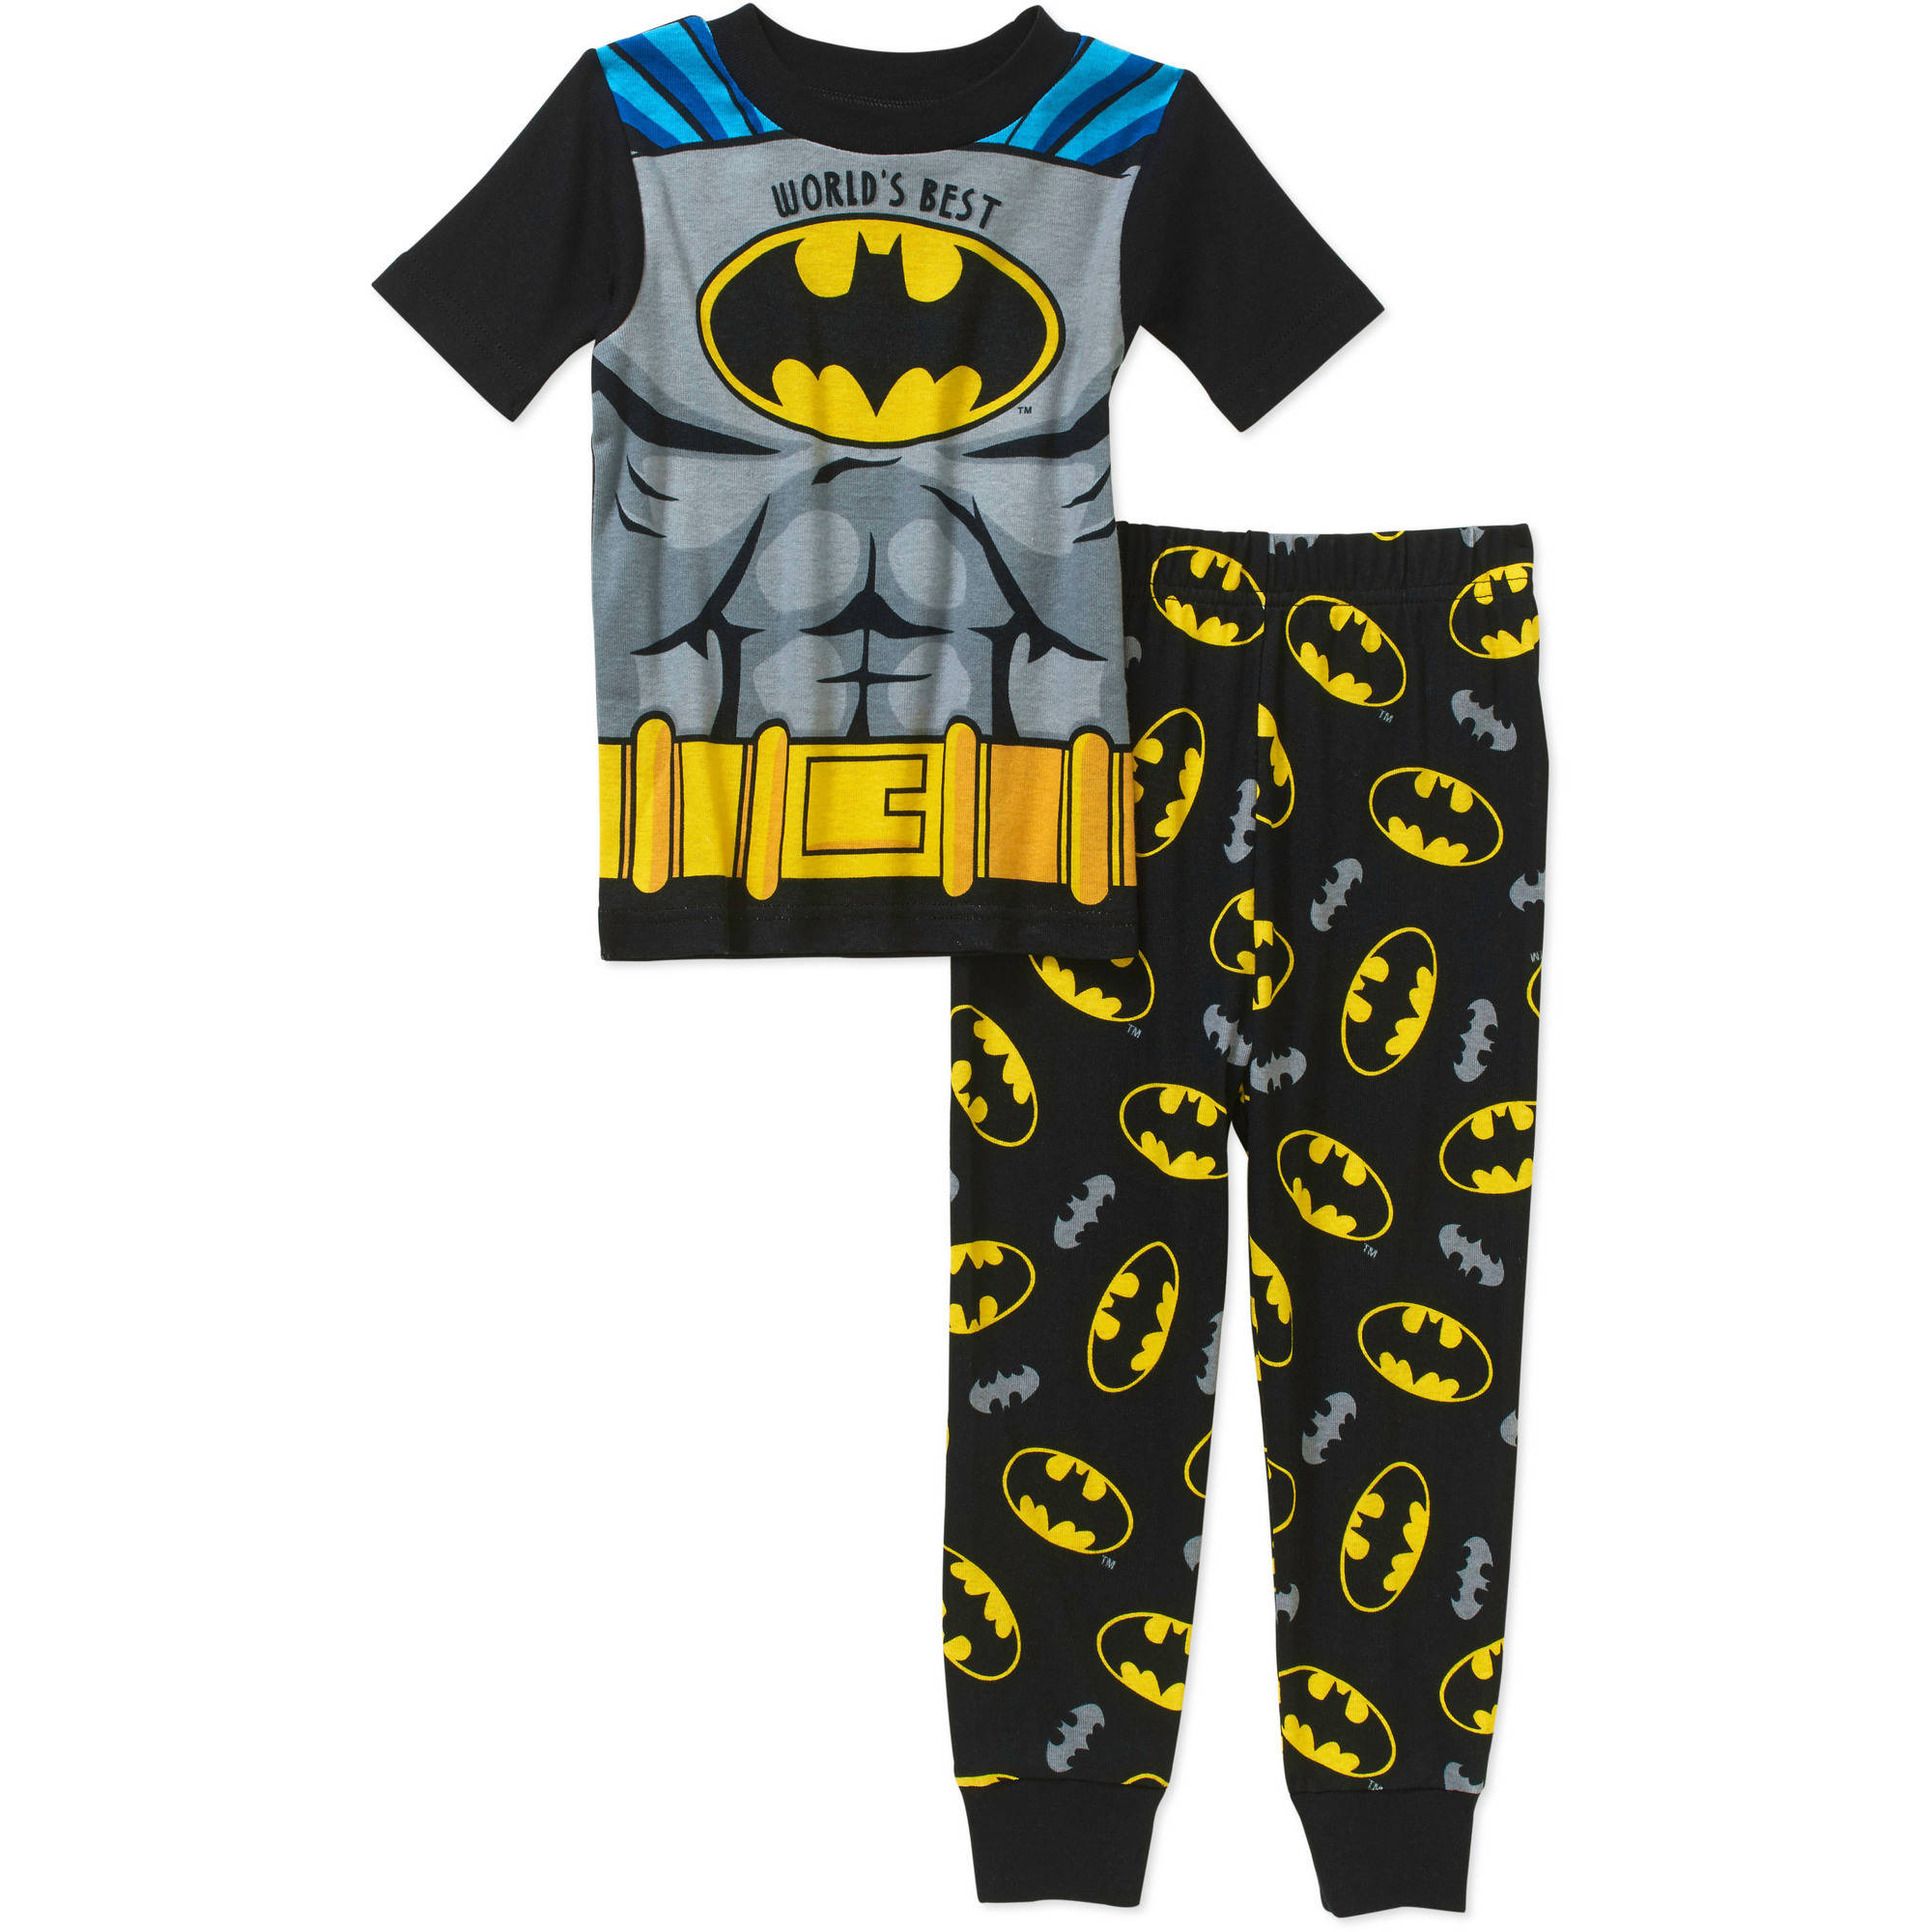 Toddler Boys' Licensed Cotton Pajama Sleepwear Set